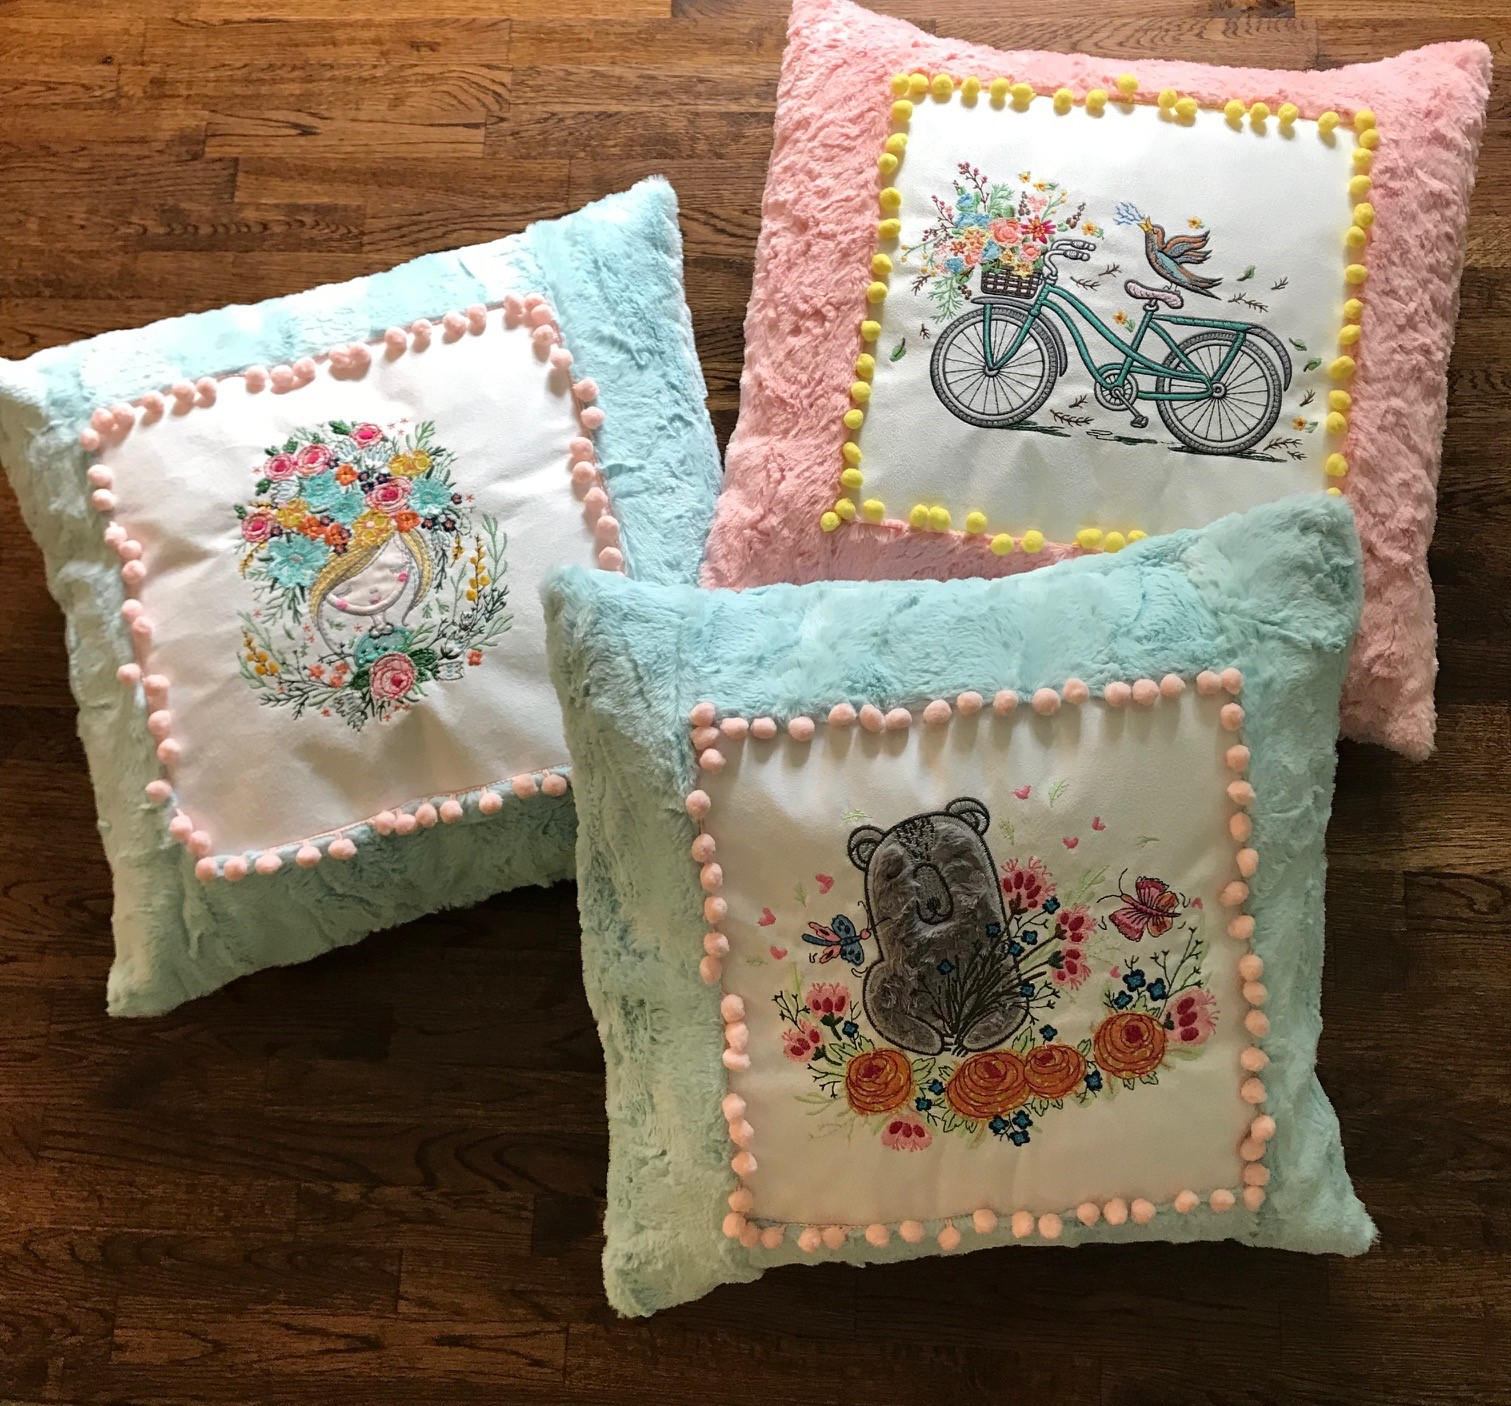 Pretty Luxe Cuddle Frame Pillows with machine embroidery by Anita Goodesign